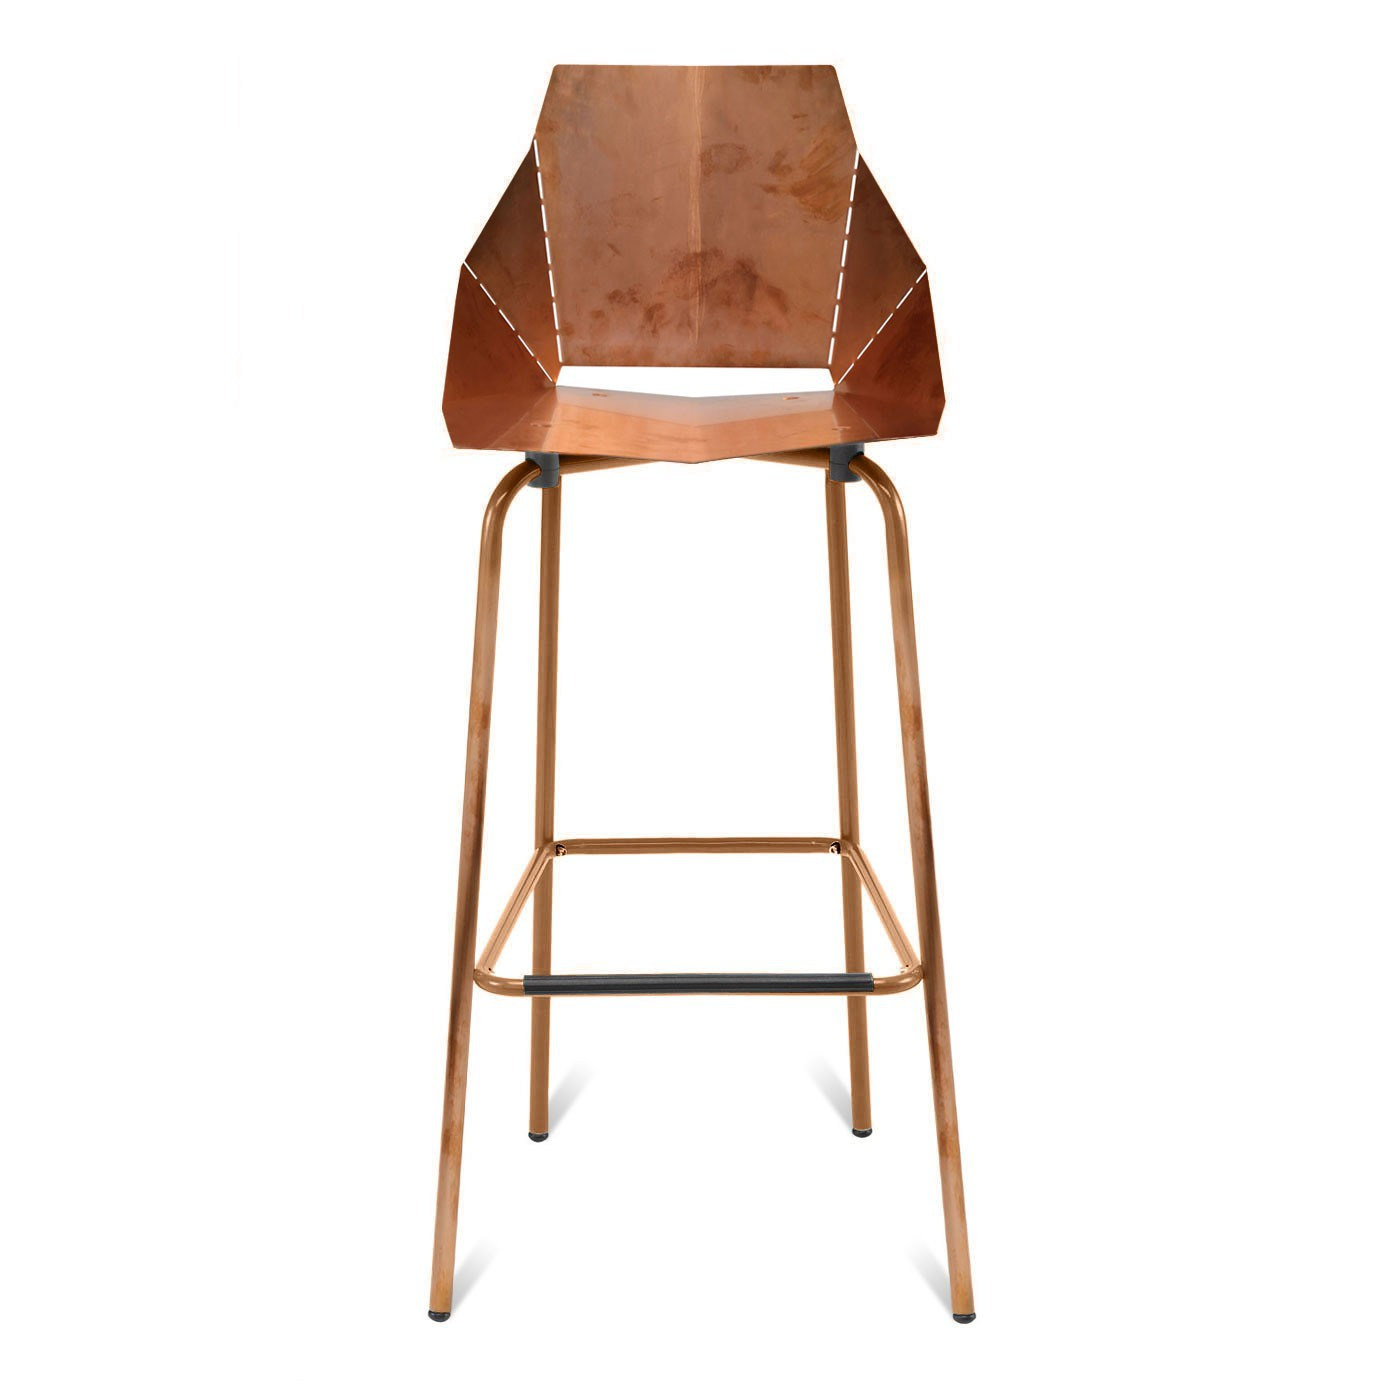 furniture-interior-minimalist-copper-barstool-with-four-leg-orange-iron-legs-for-any-room-decor-fascinating-modern-bar-stools-picture-ideas